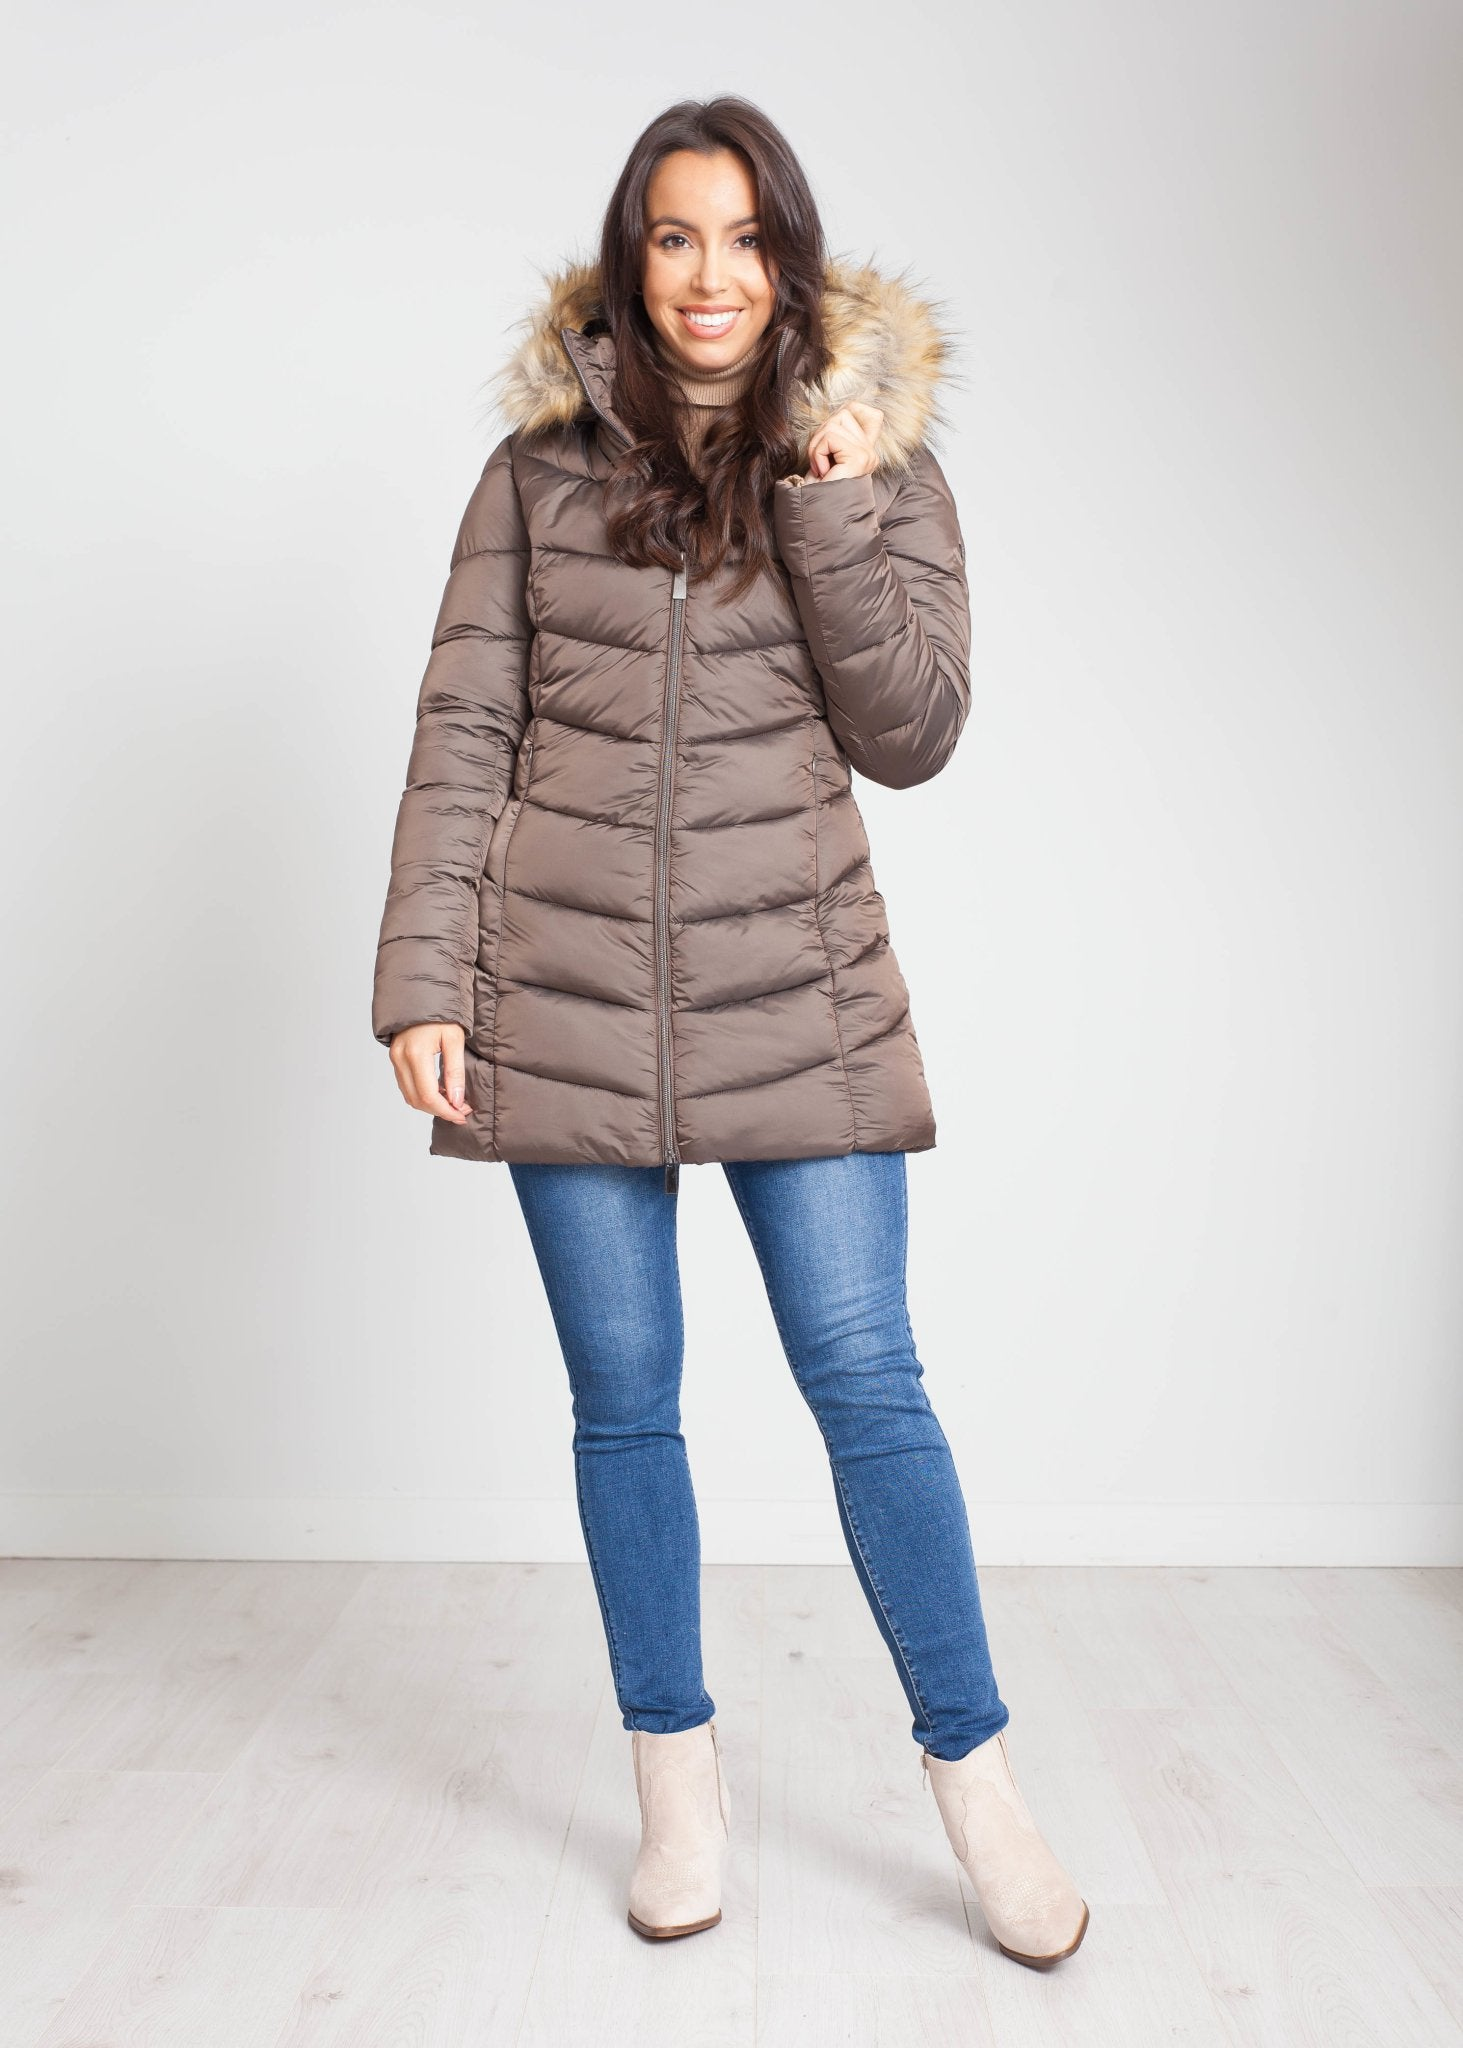 Heidi Hooded Puffa Coat In Bronze - The Walk in Wardrobe